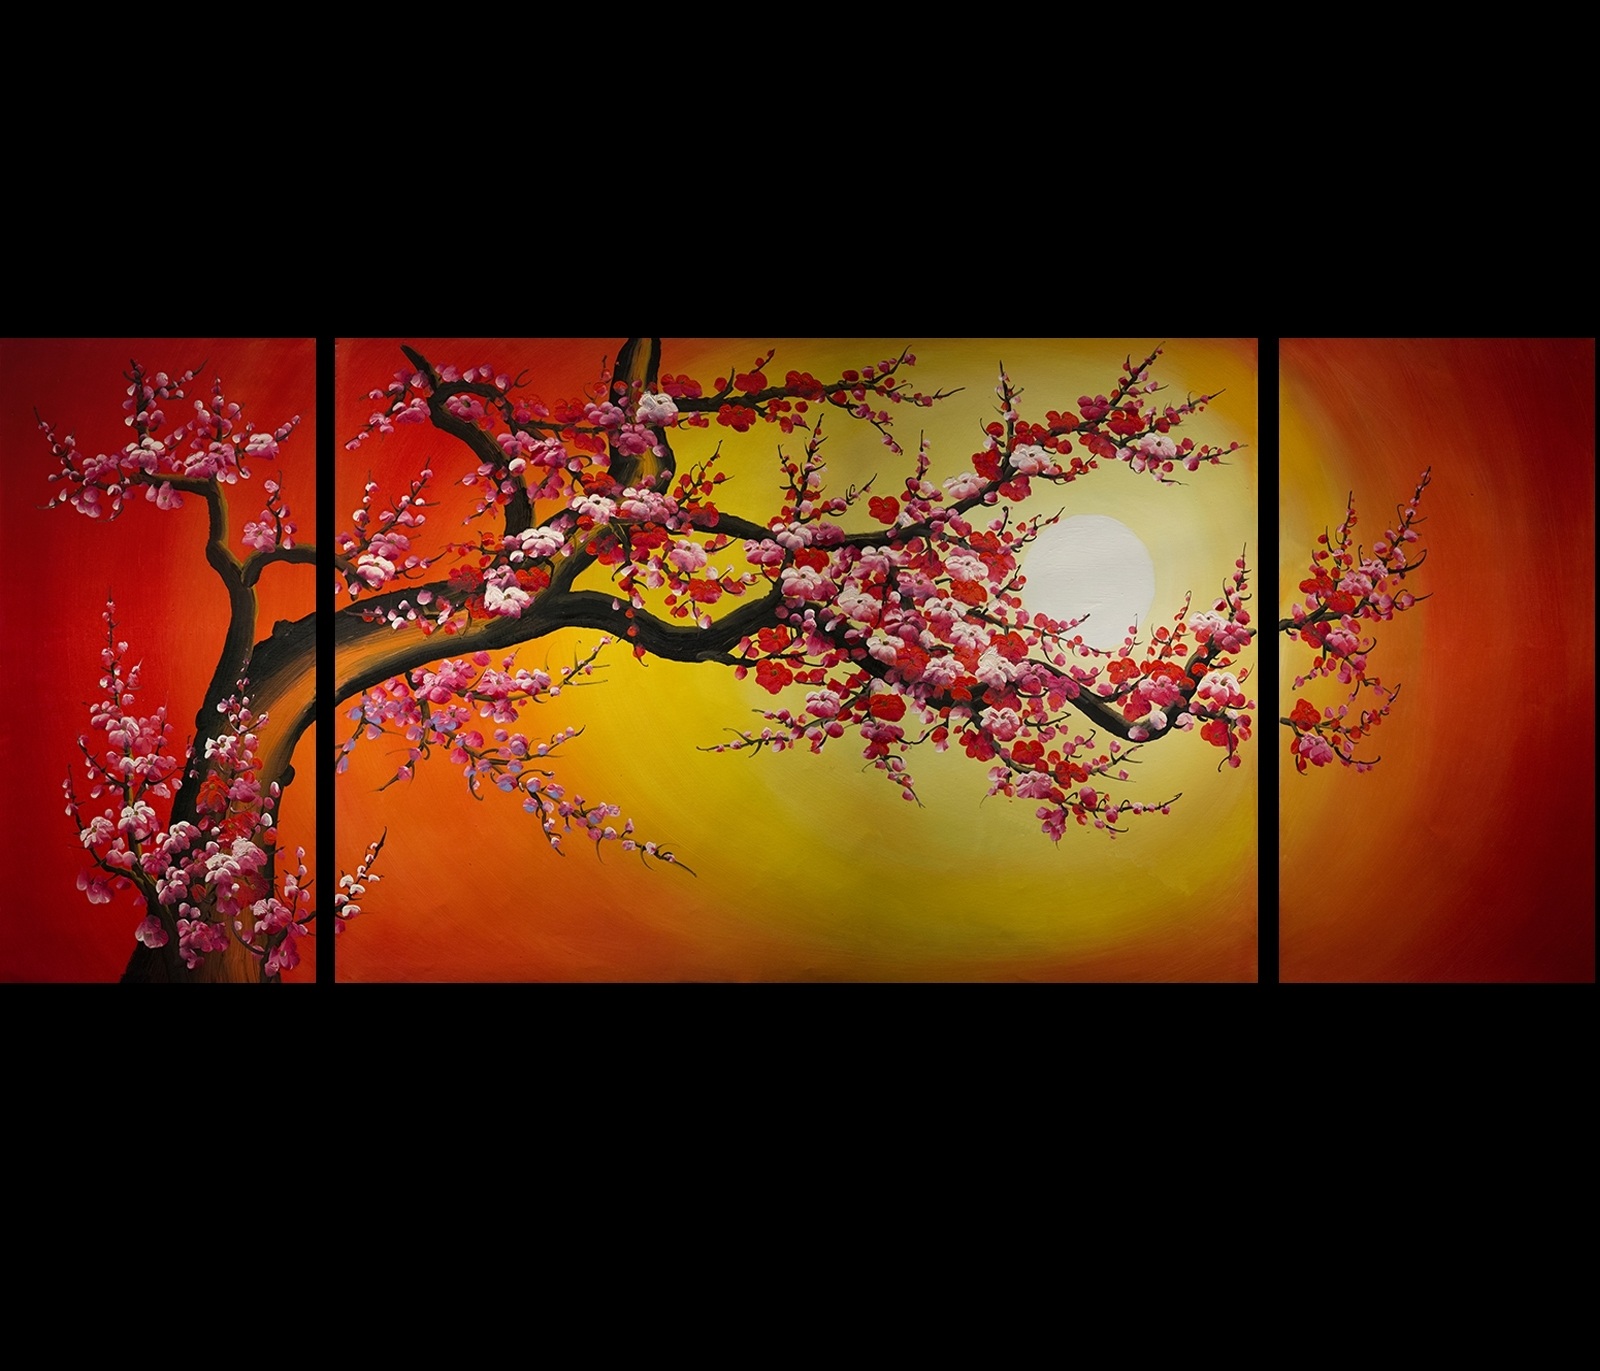 Chinese Cherry Blossom Feng Shui Oil Painting Abstract Art Modern In Best And Newest Abstract Oil Painting Wall Art (View 14 of 20)